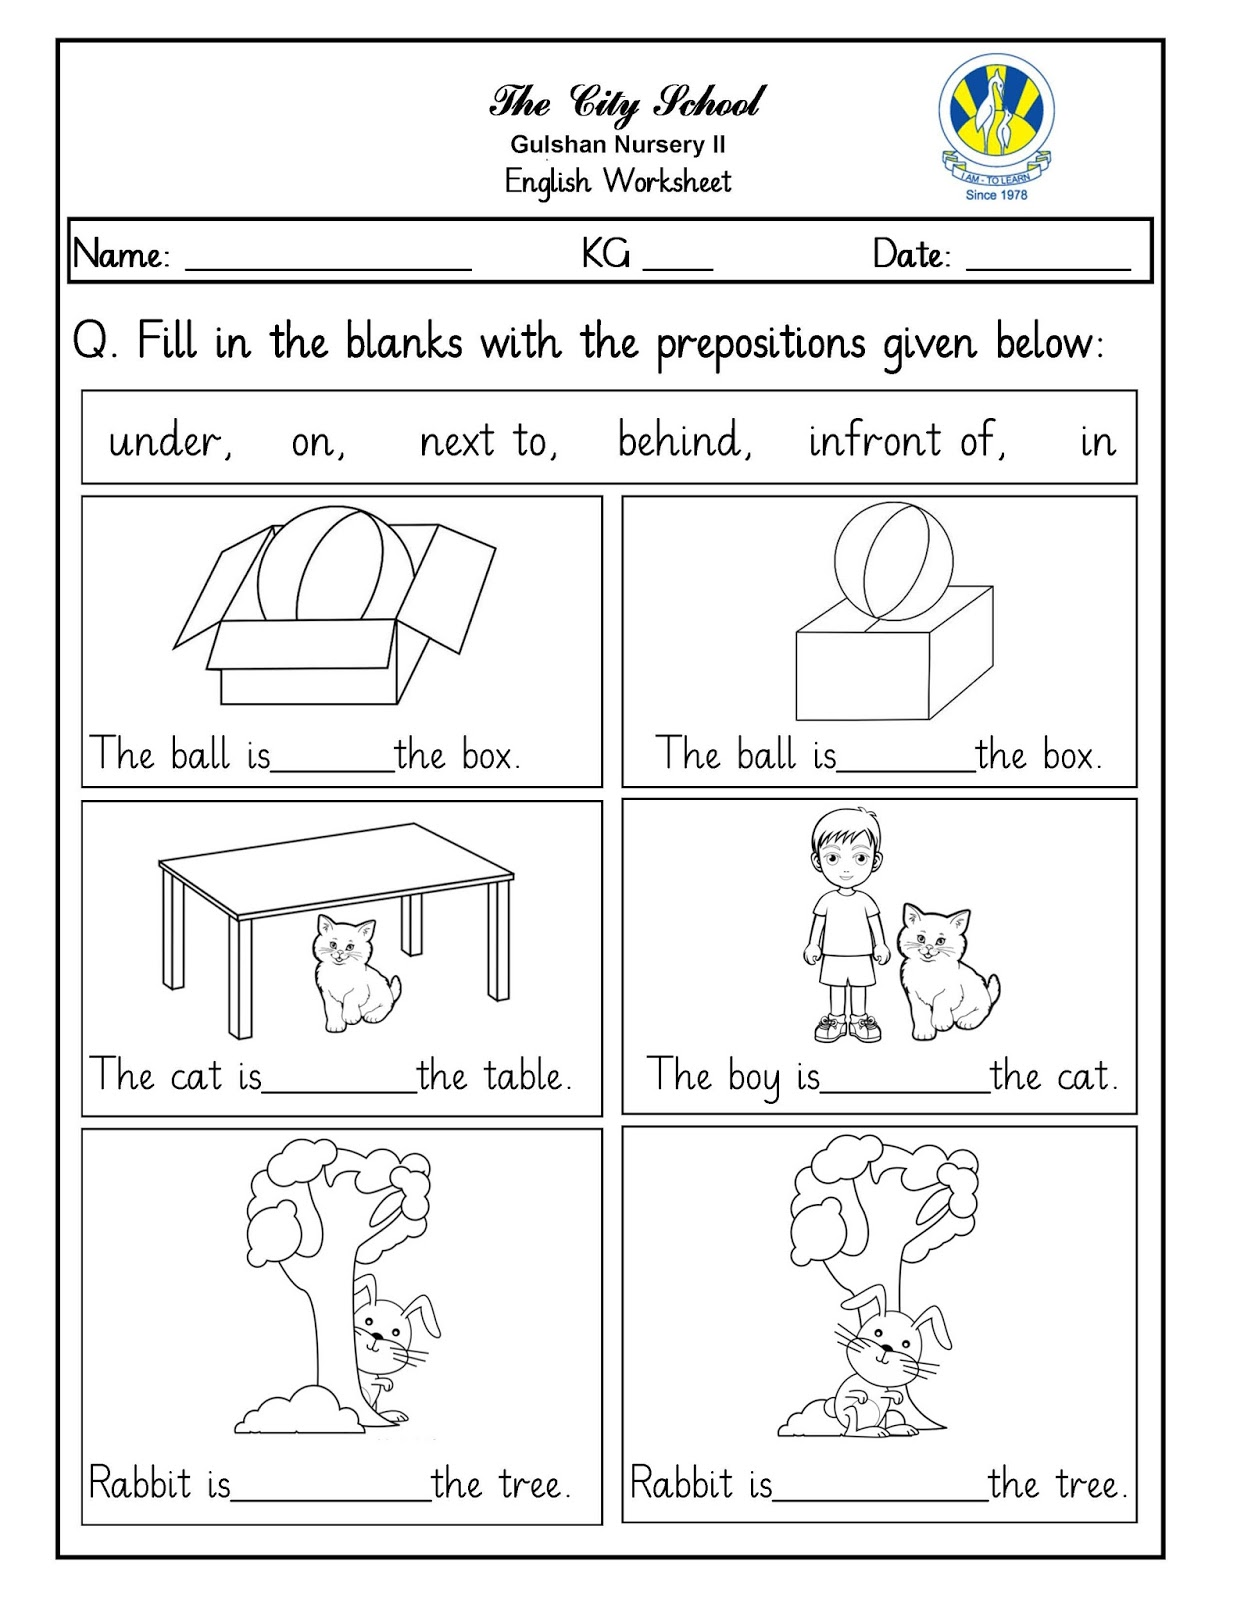 Sr Gulshan The City Nursery Ii English And Urdu Worksheet